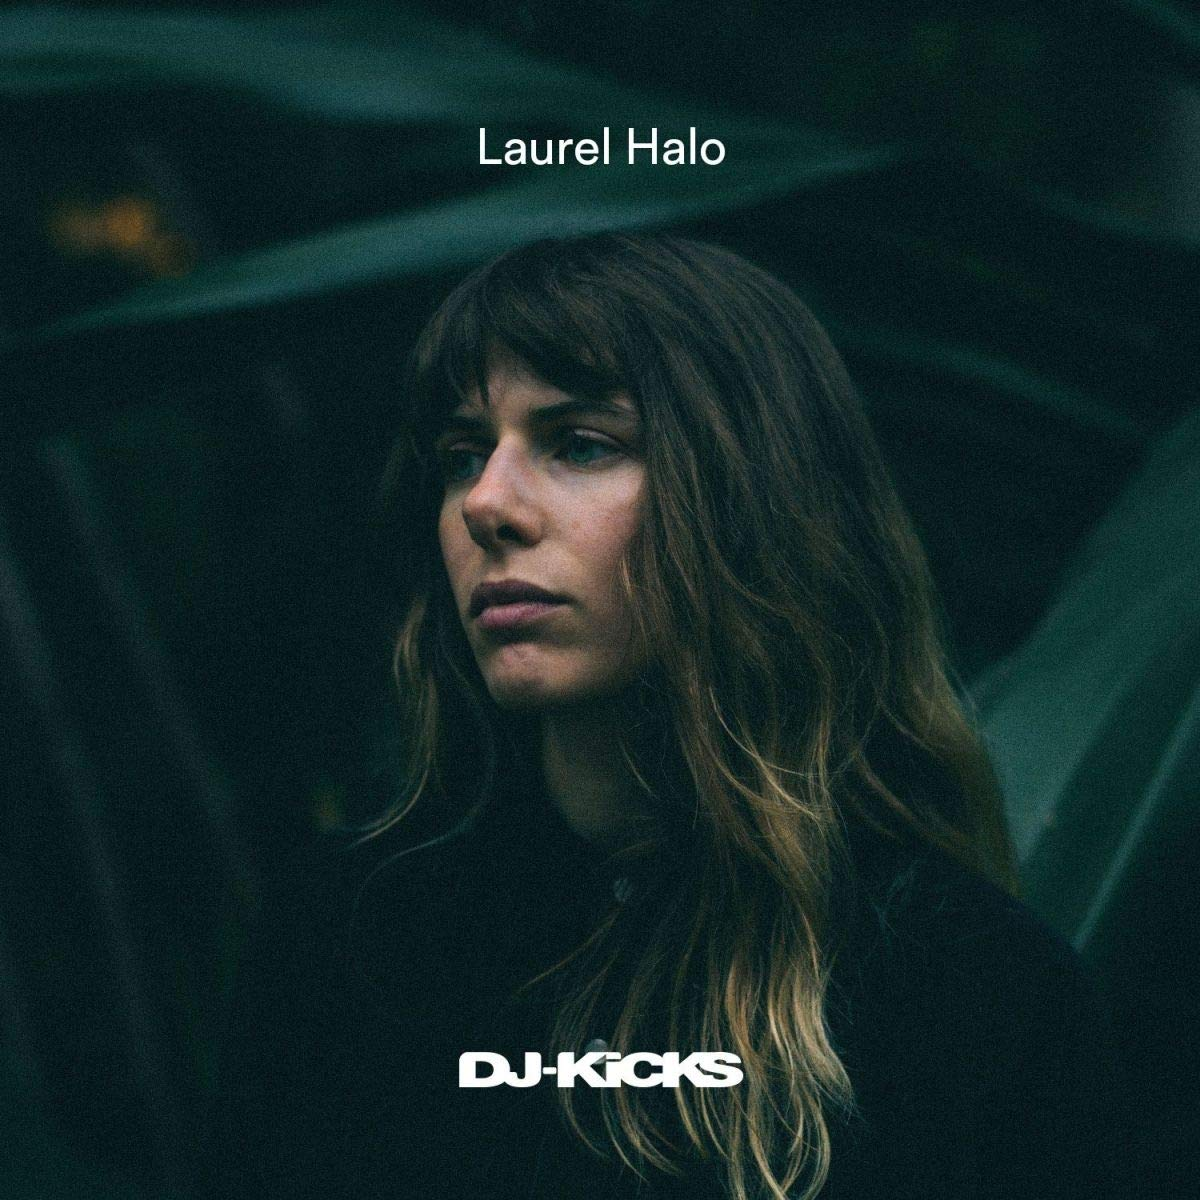 Laurel Halo - Laurel Halo Dj-Kicks [Download Included]